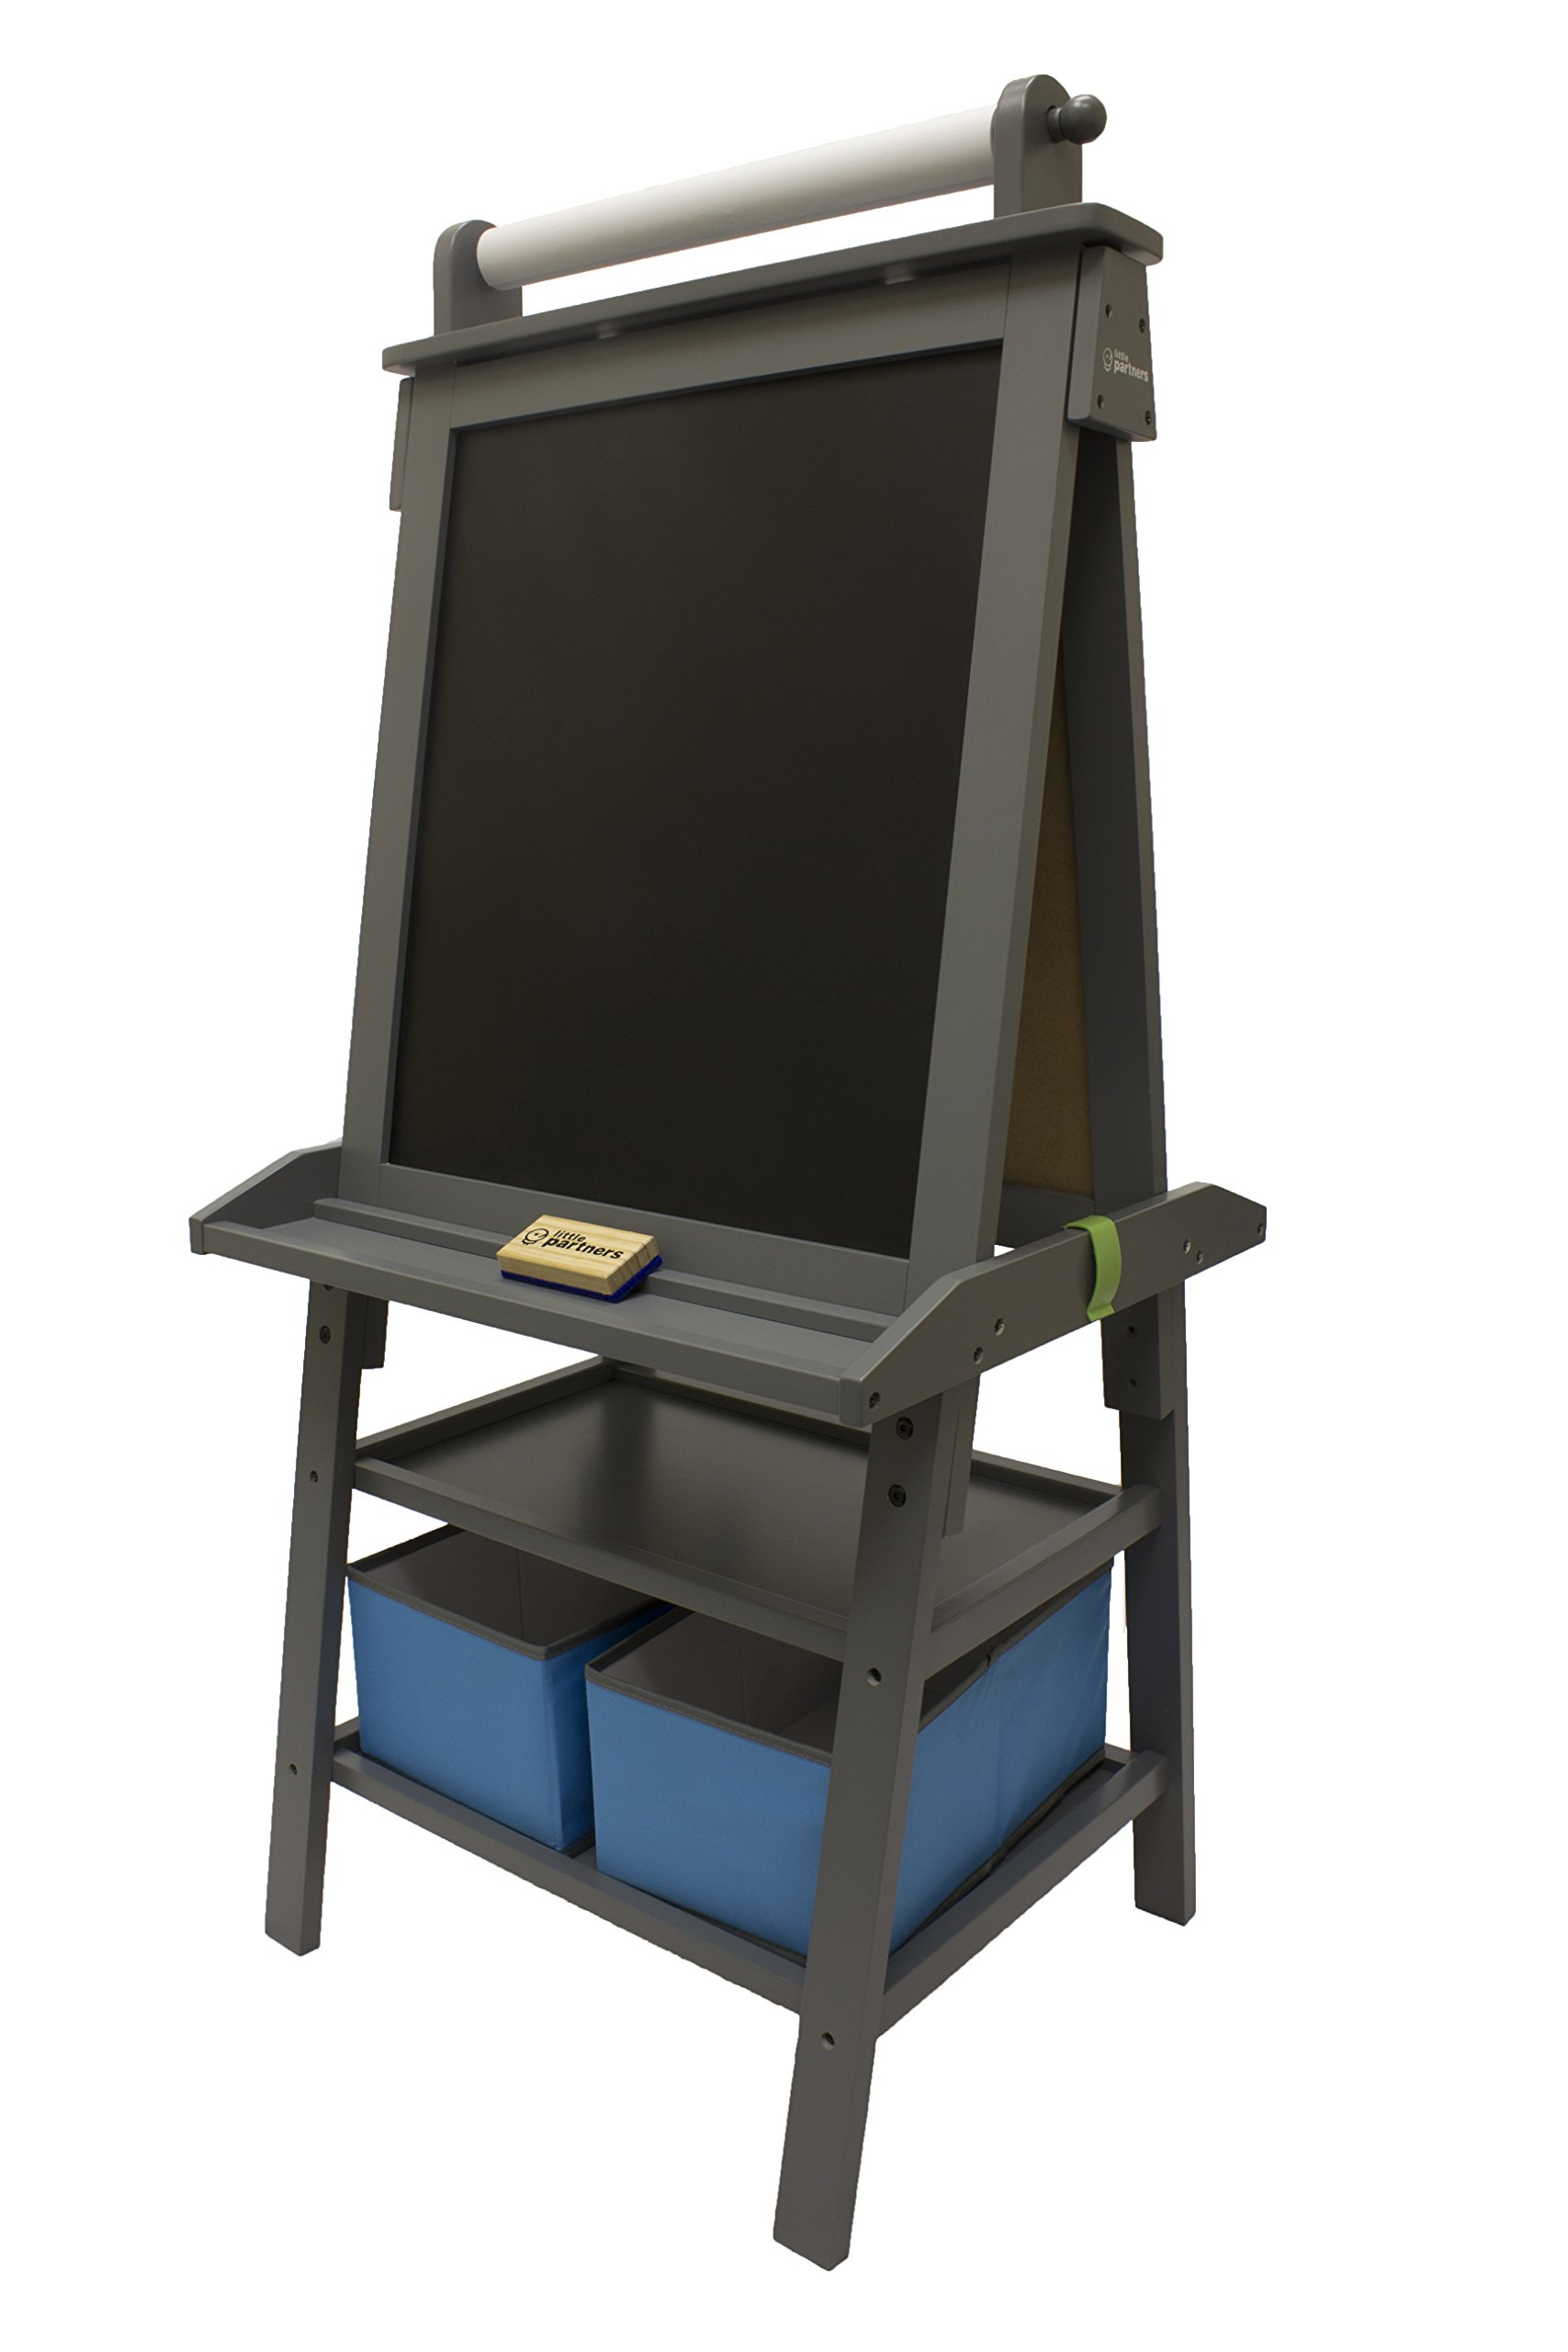 Little Partners 2-Sided A-Frame Art Easel with Chalk Board, Magnetic Dry Erase, Storage, Paper Feed and Accessories for Toddlers, Earl Grey